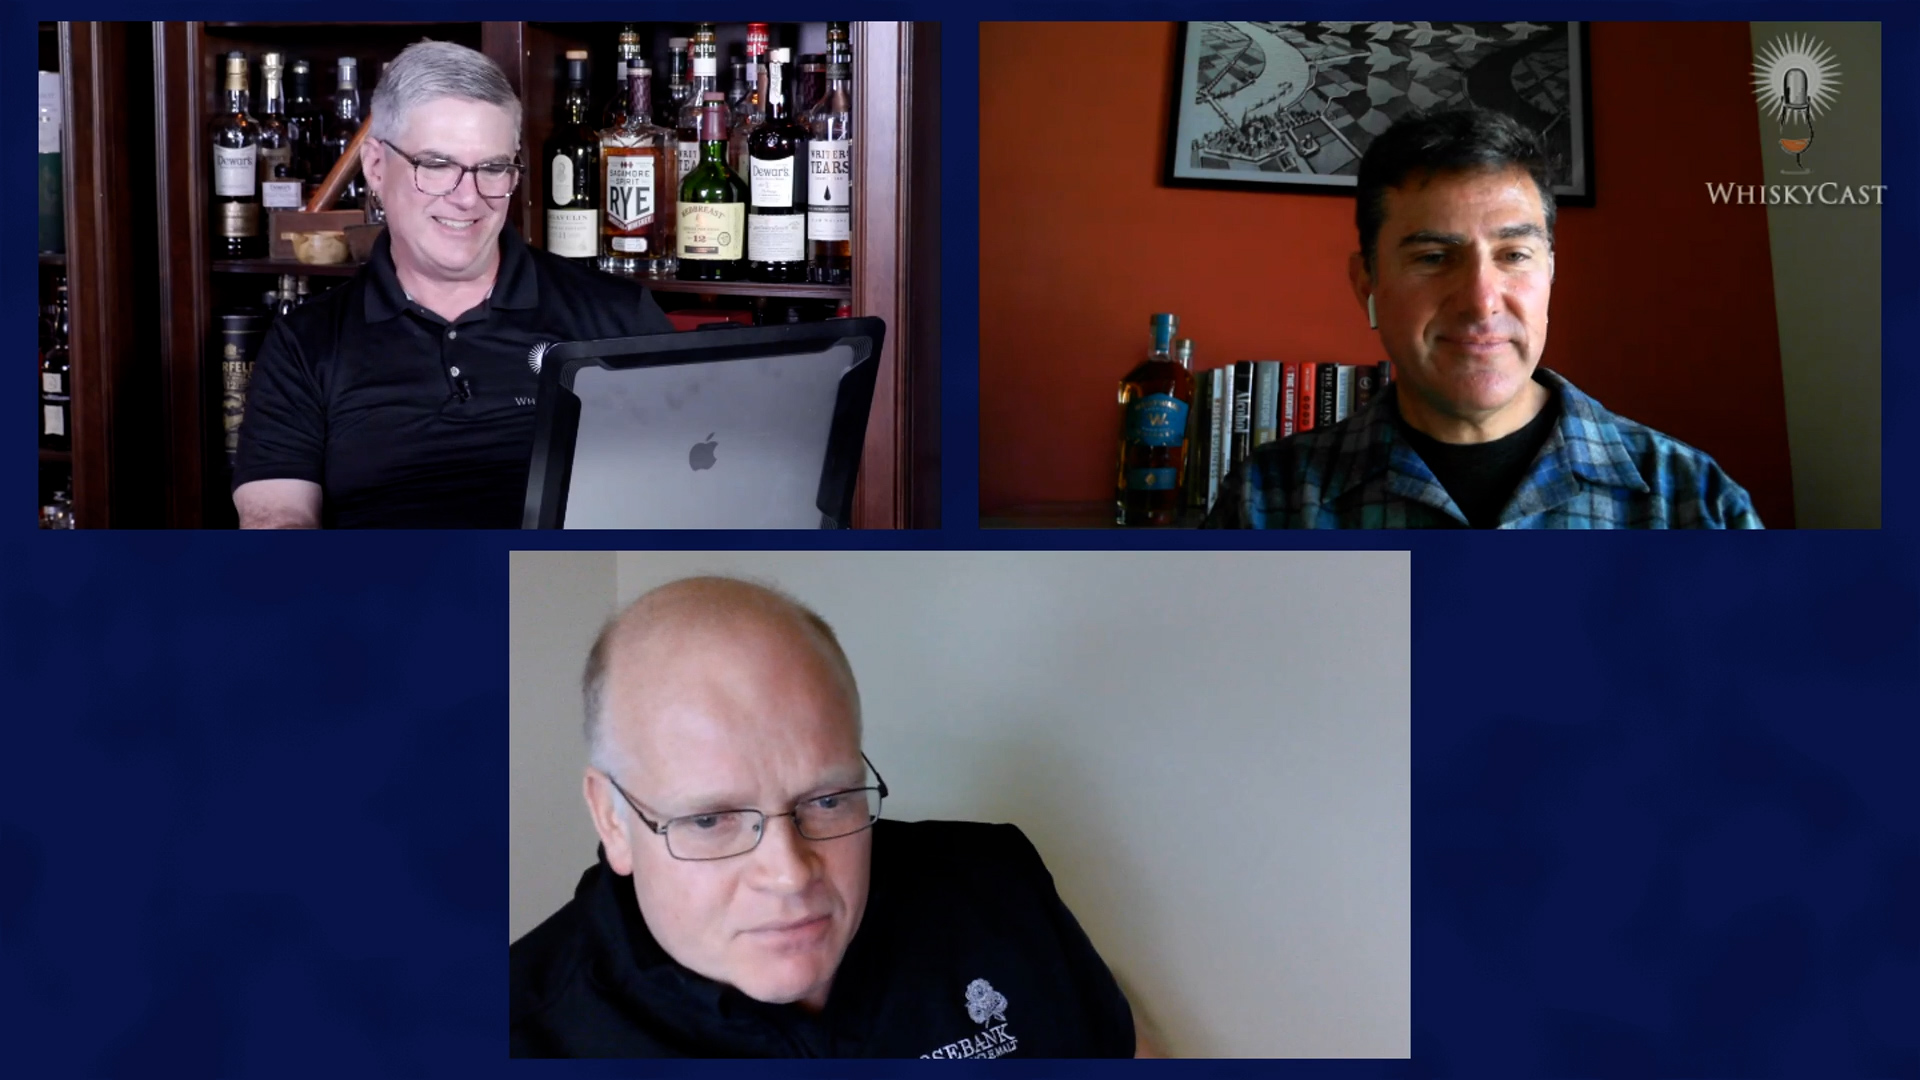 Tom Mooney of Westward Whiskey and Gordon Dundas of Ian Macleod Distillers were our guests on the final #WhiskyWednesday webcast October 21, 2020. Our webcasts will continue on Friday nights starting October 30.